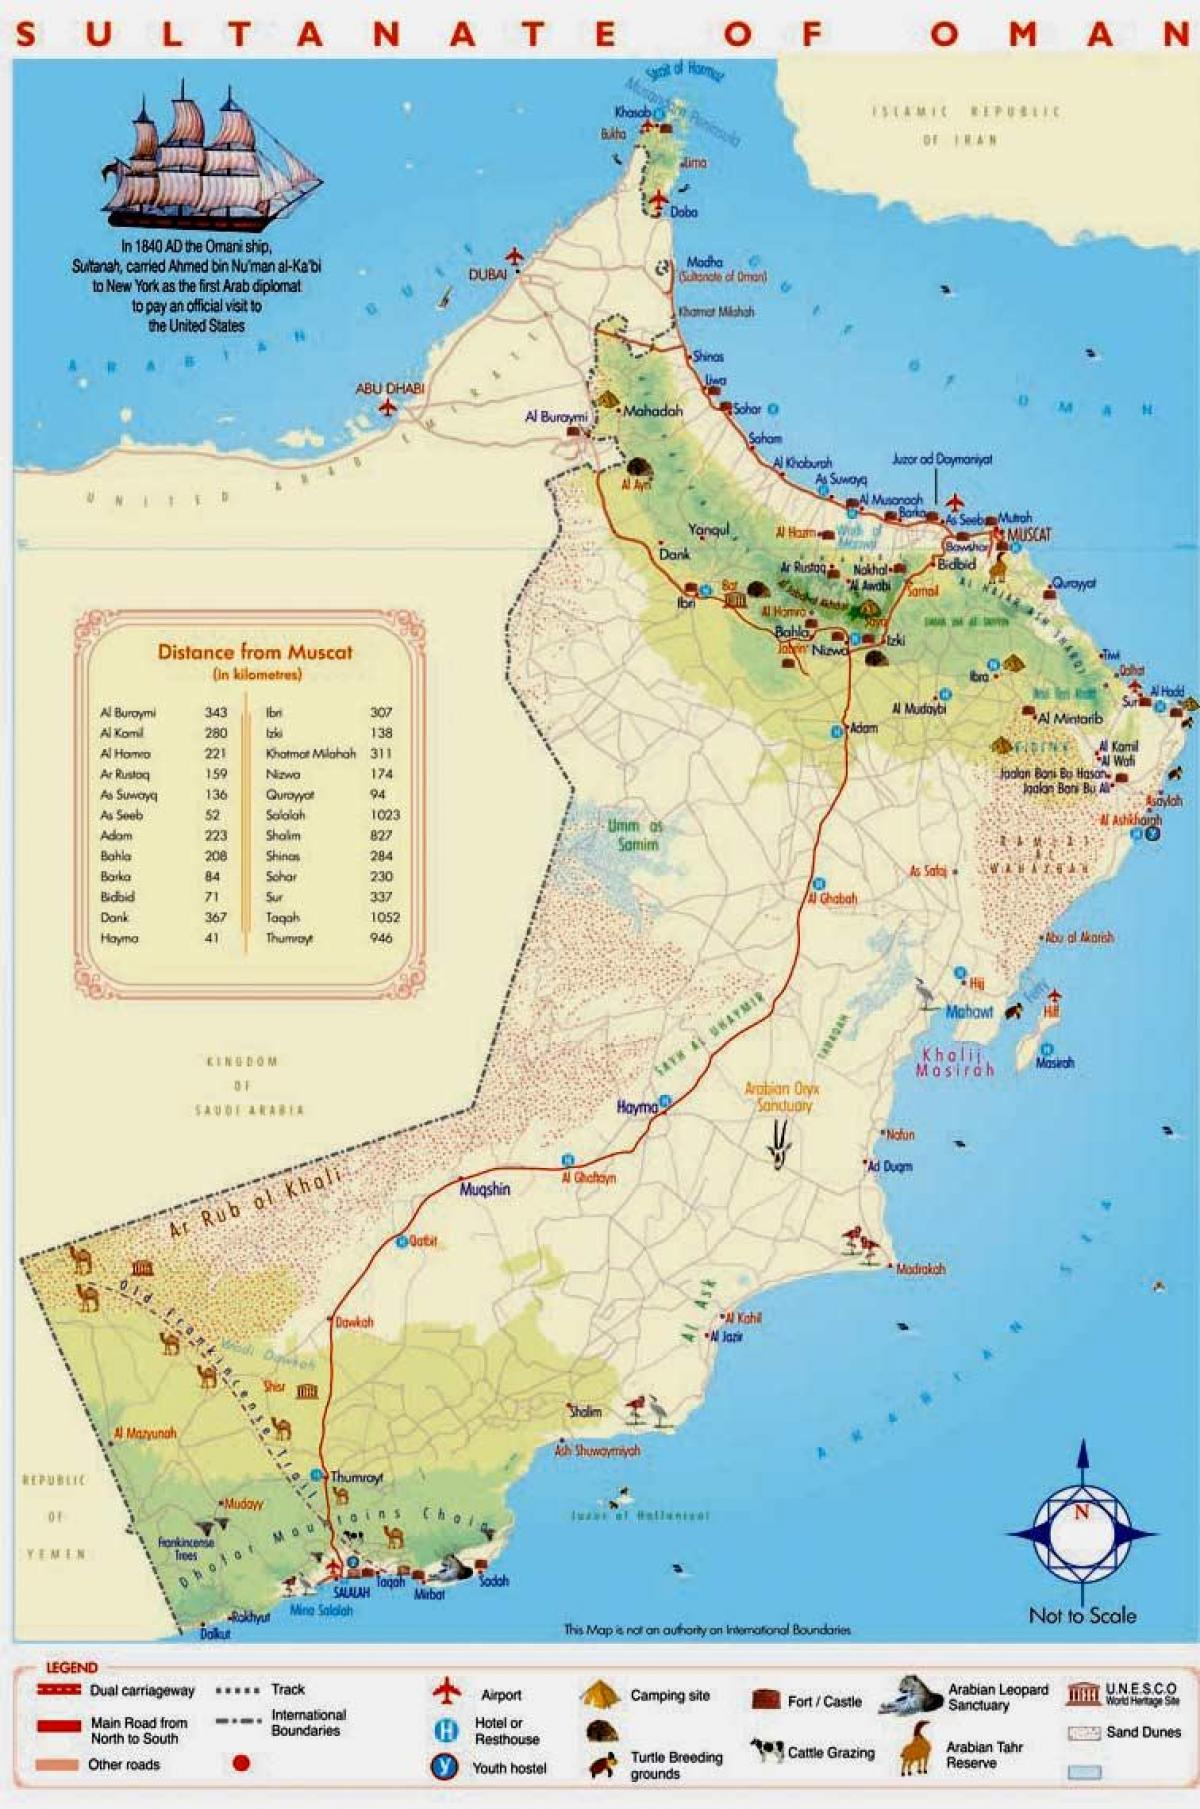 Oman tourist attractions map - Oman attractions map (Western